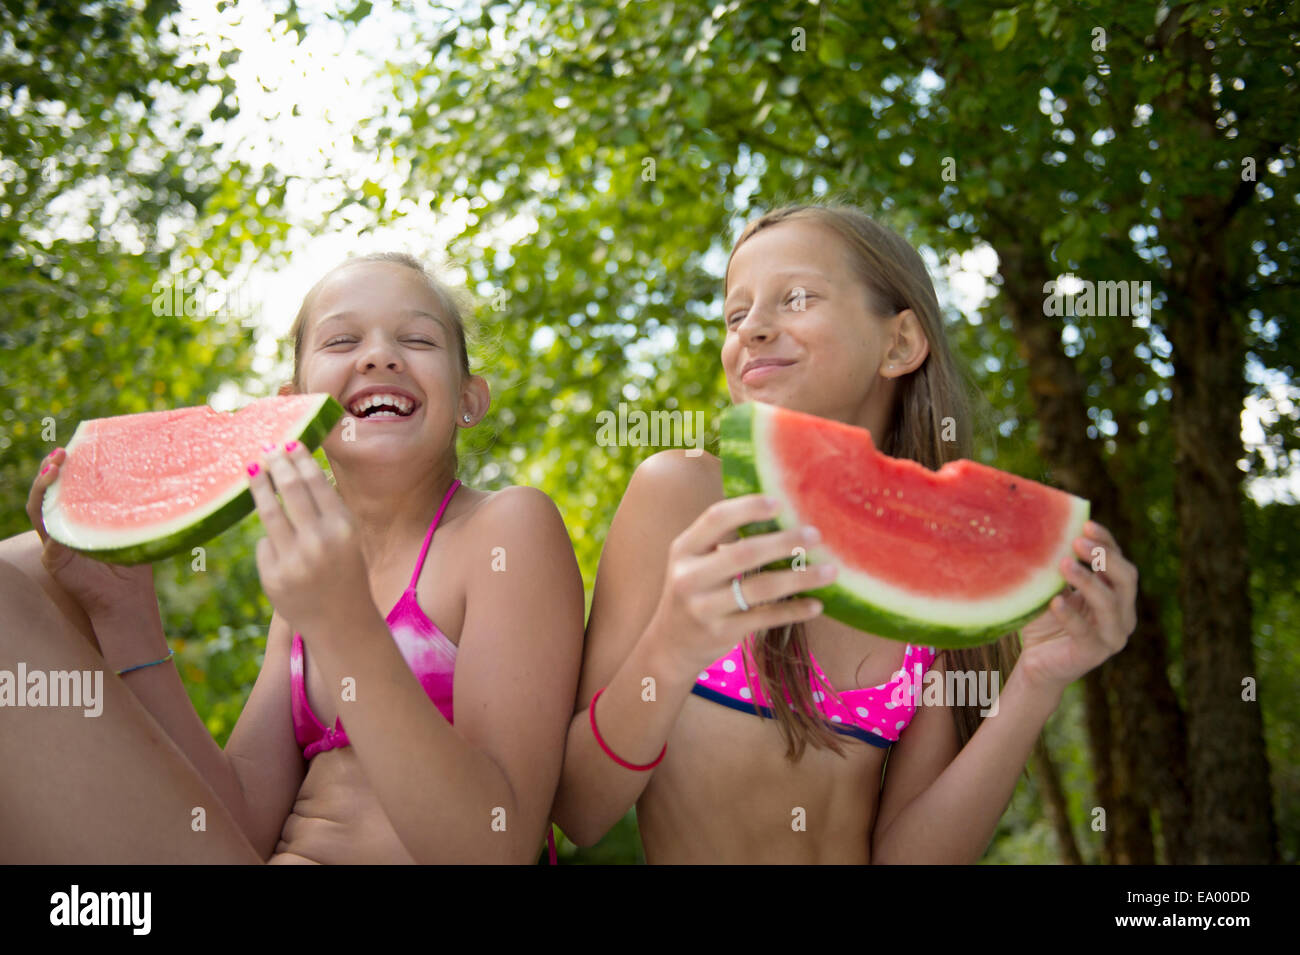 Friends eating watermelon in garden - Stock Image